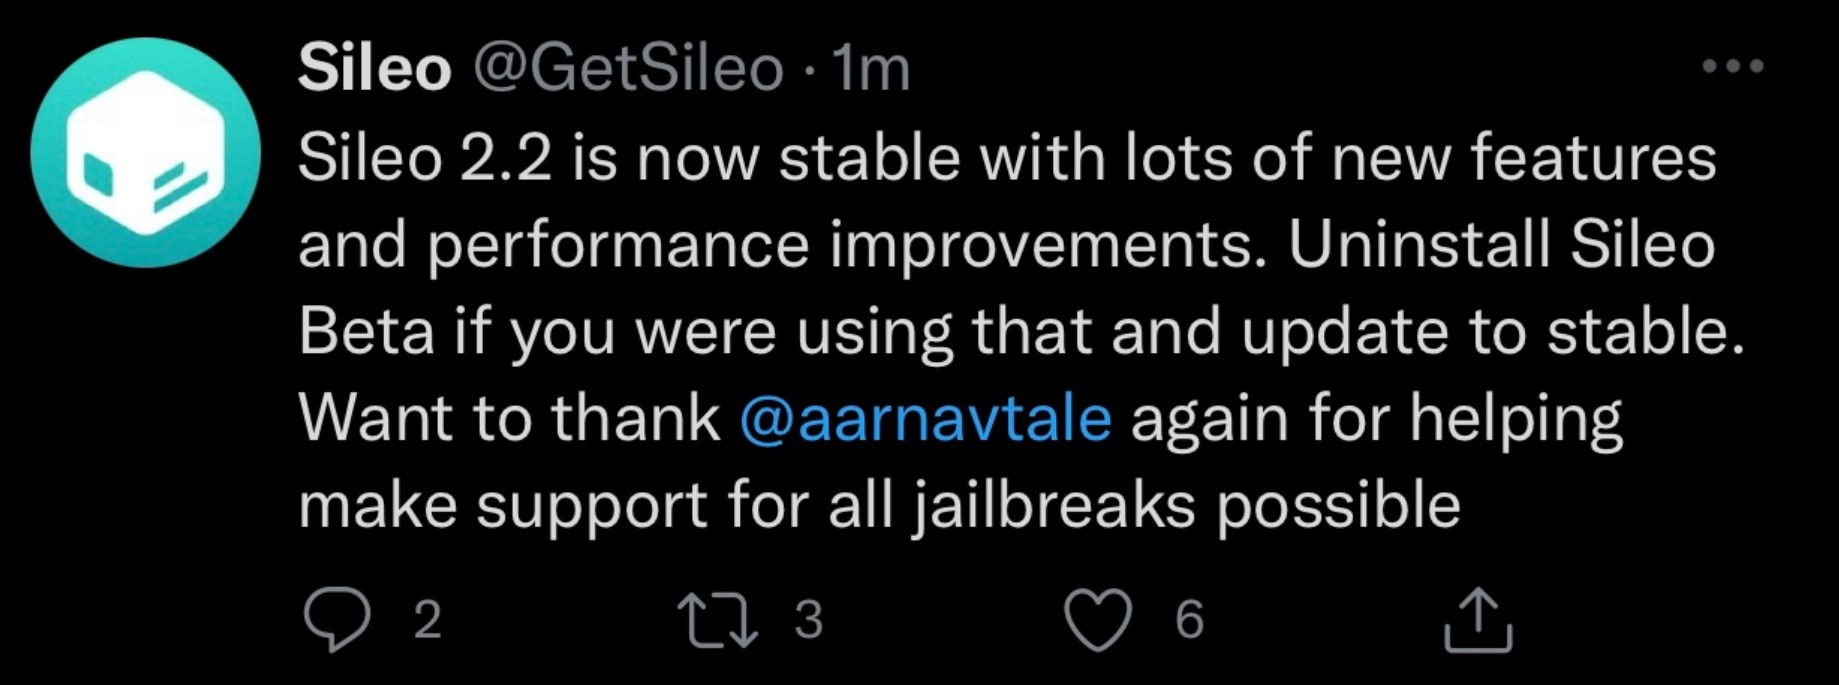 sileo-stable-public-release-2-2